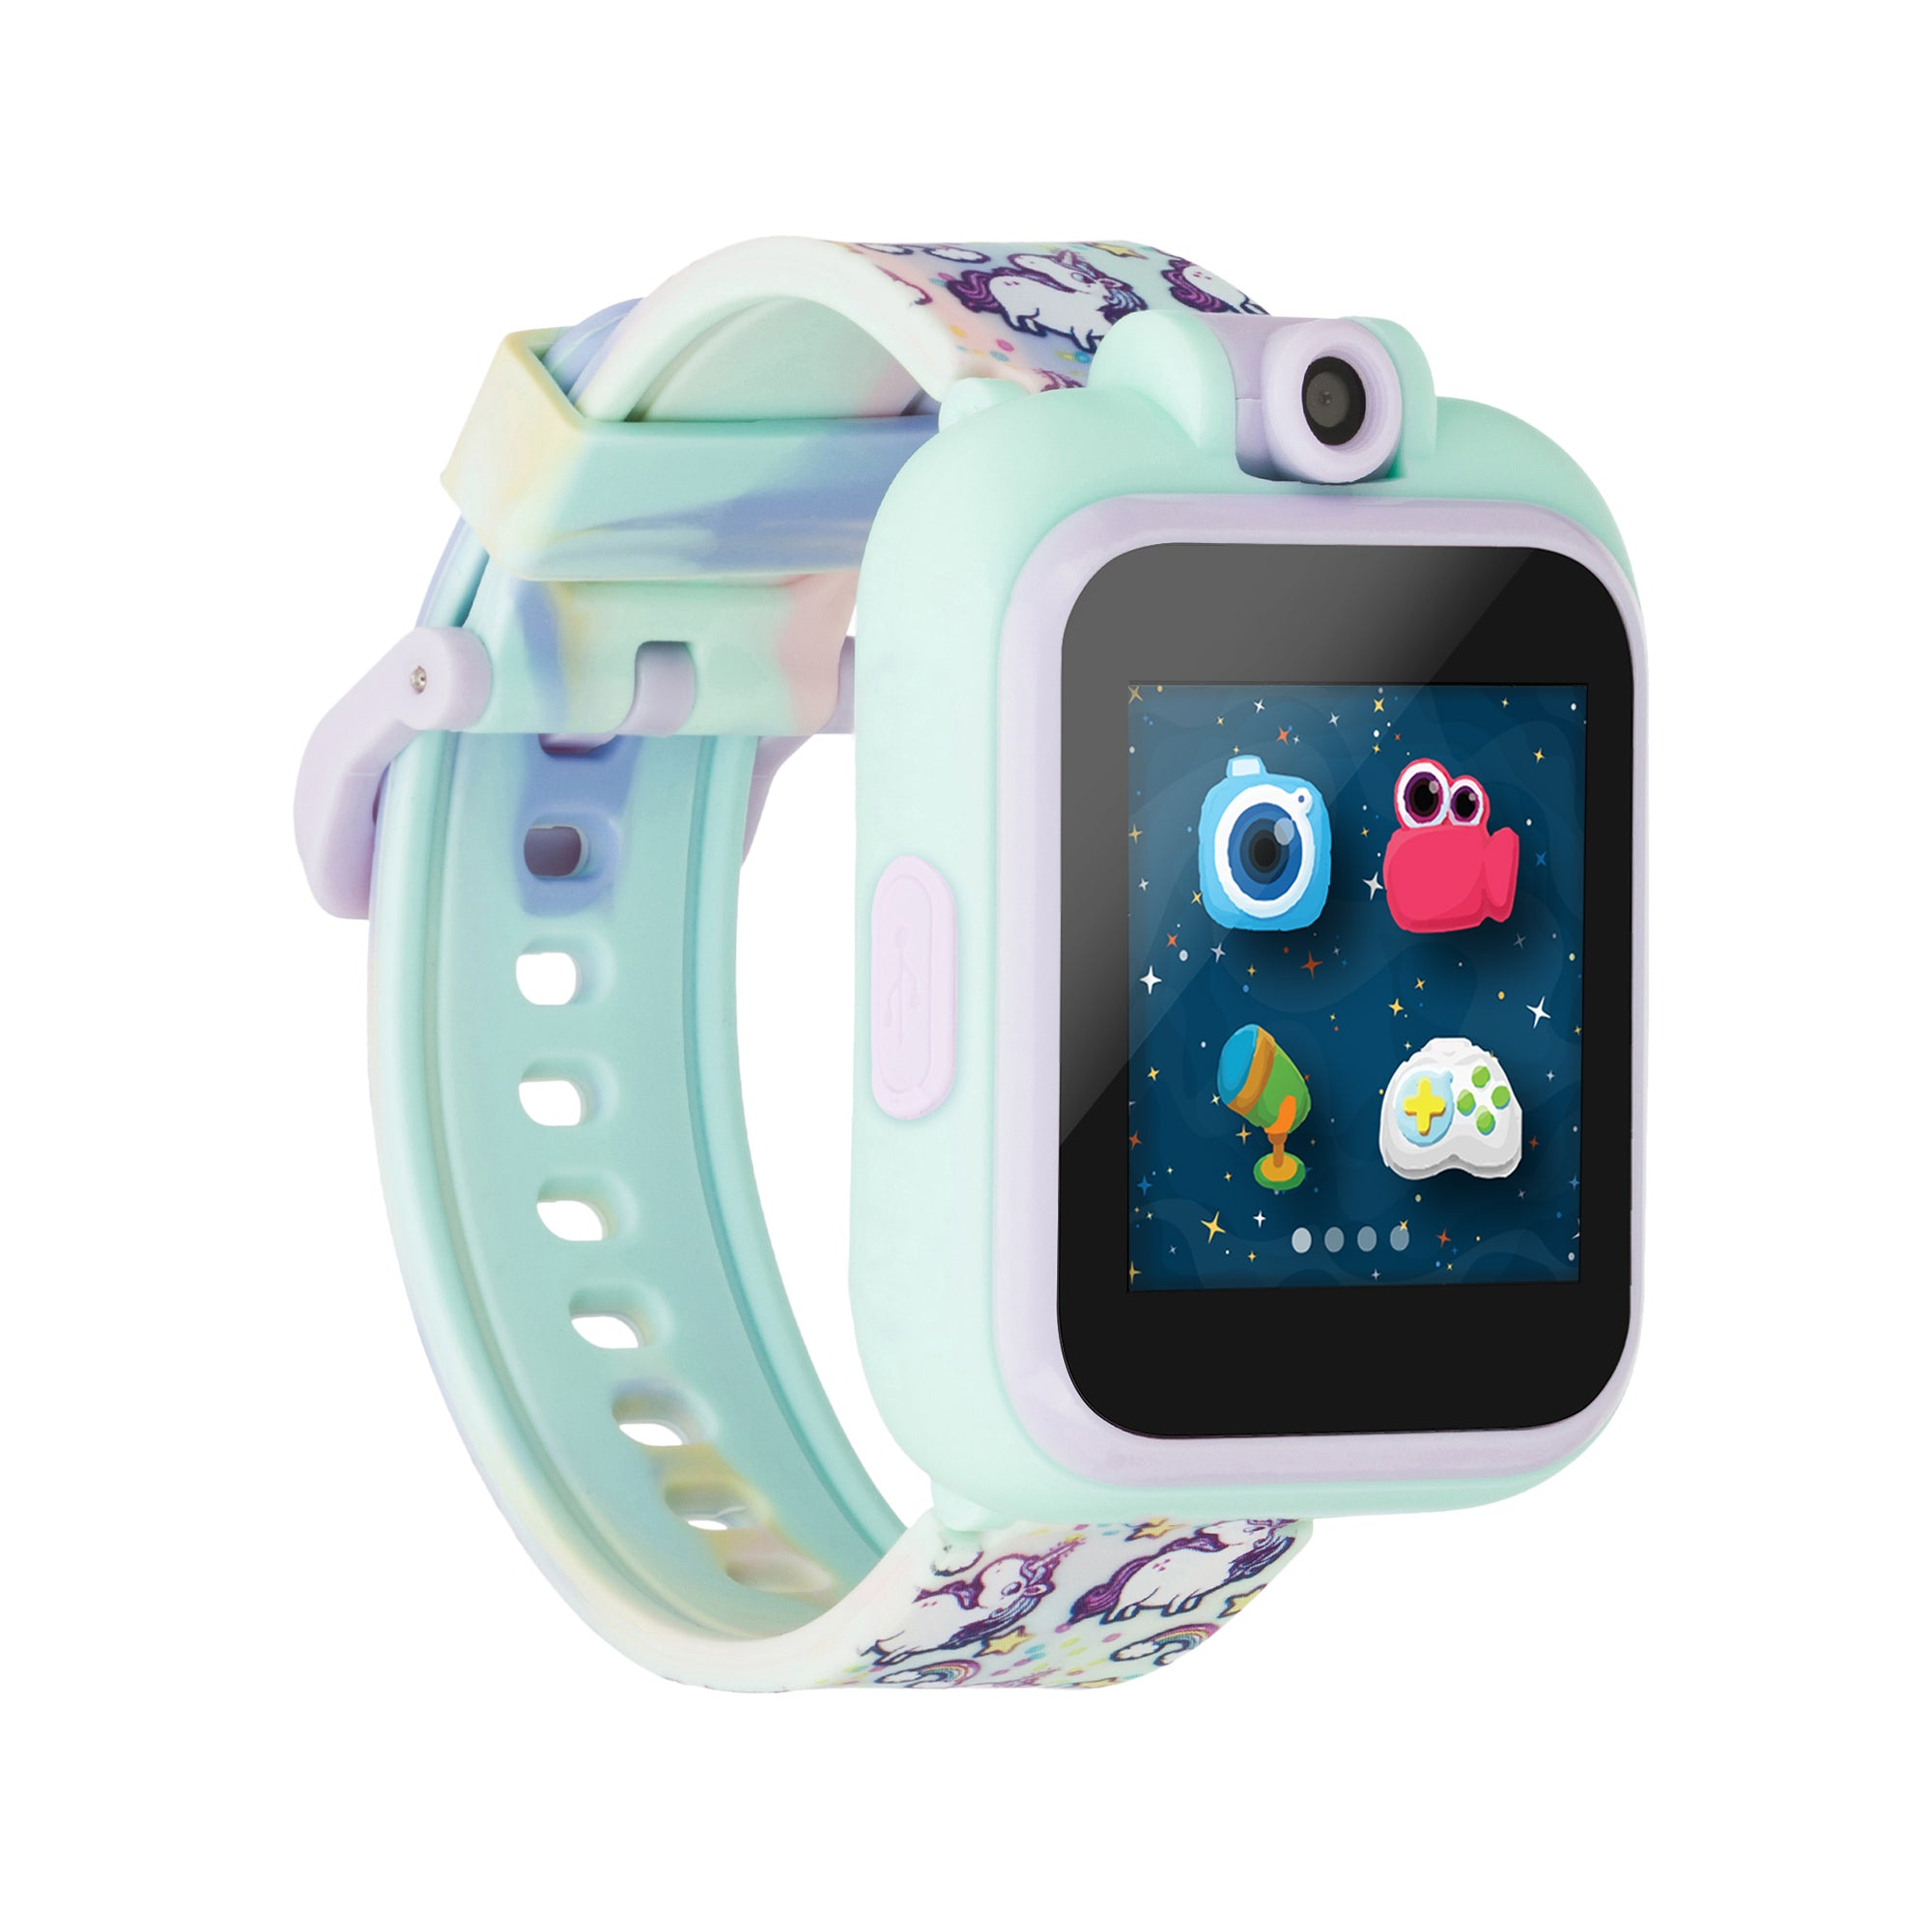 PlayZoom Smartwatch For Kids: Tie Dye with Unicorns Print